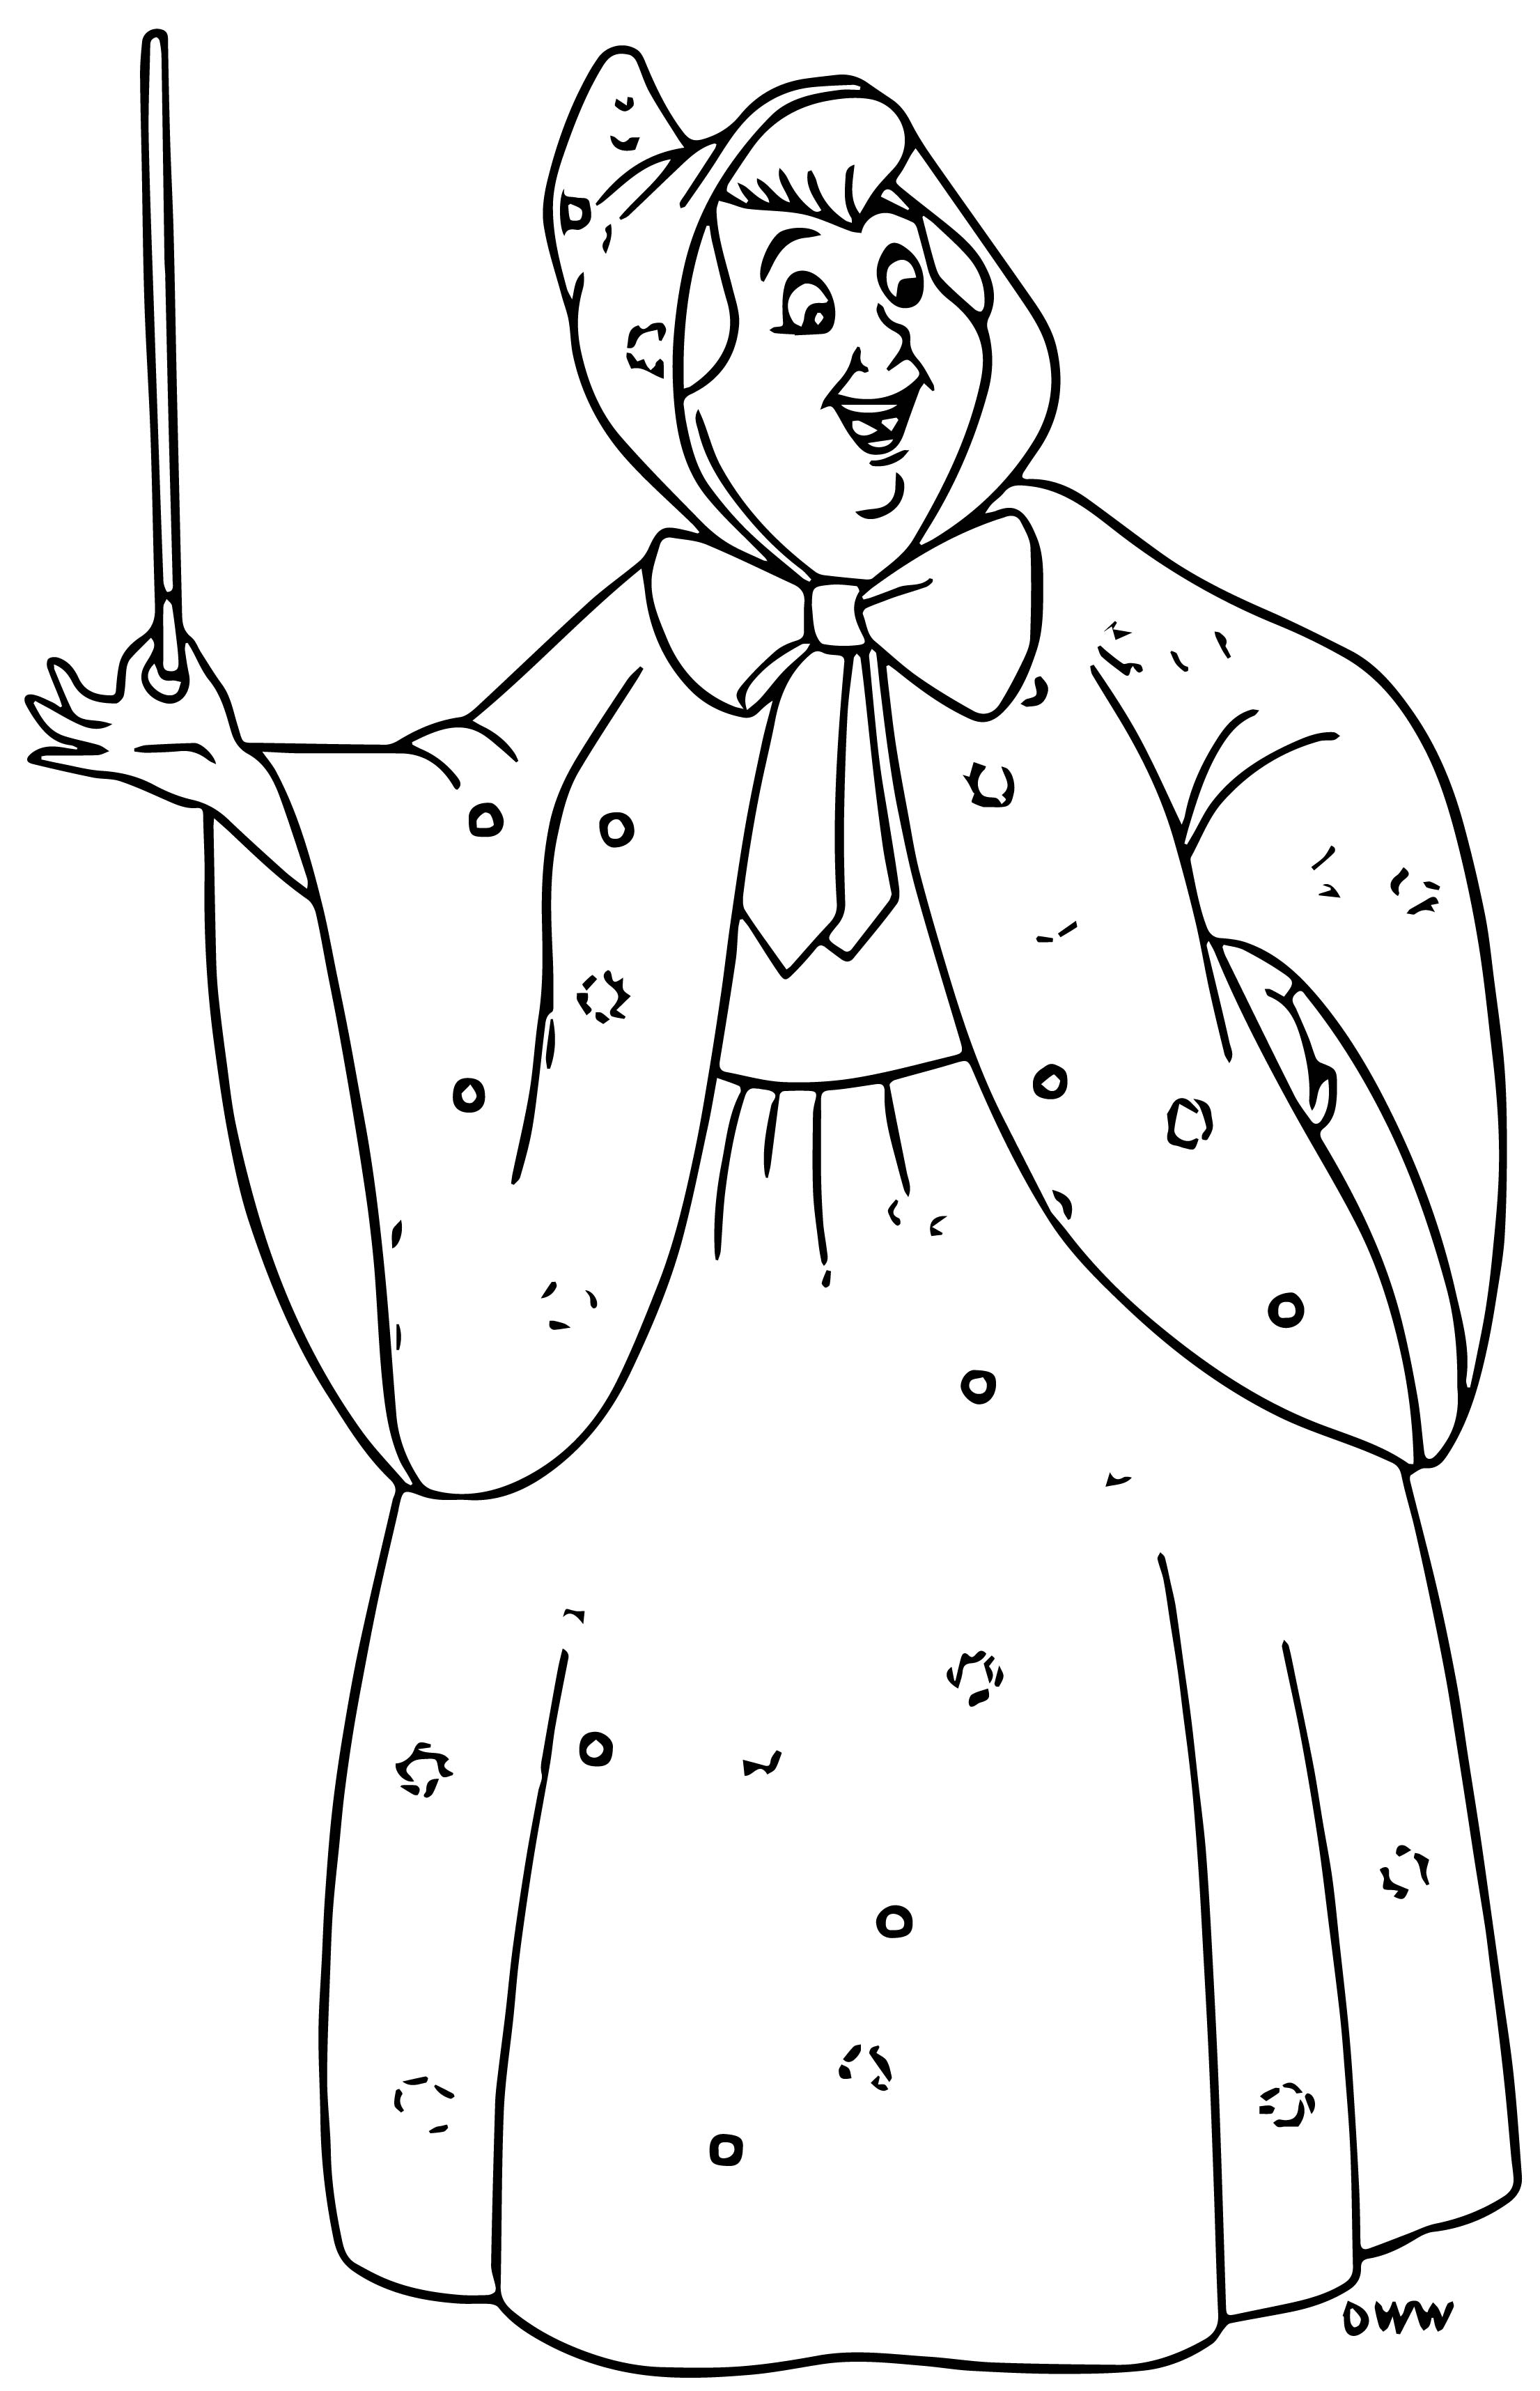 fairy godmother coloring pages | Cinderella Fairy Godmother Coloring Pages 12 ...